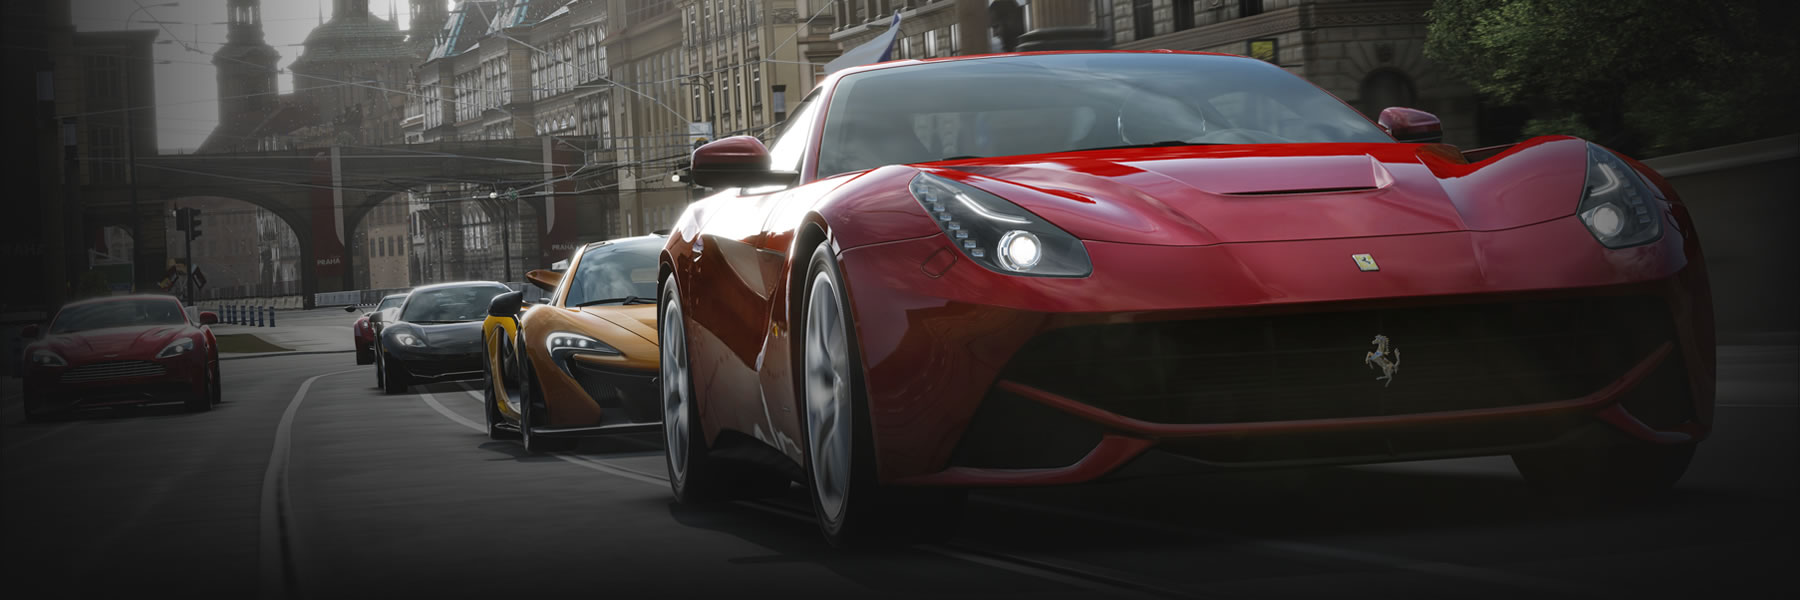 Forza Motorsport 5 uses cloud technology to improve in-game AI